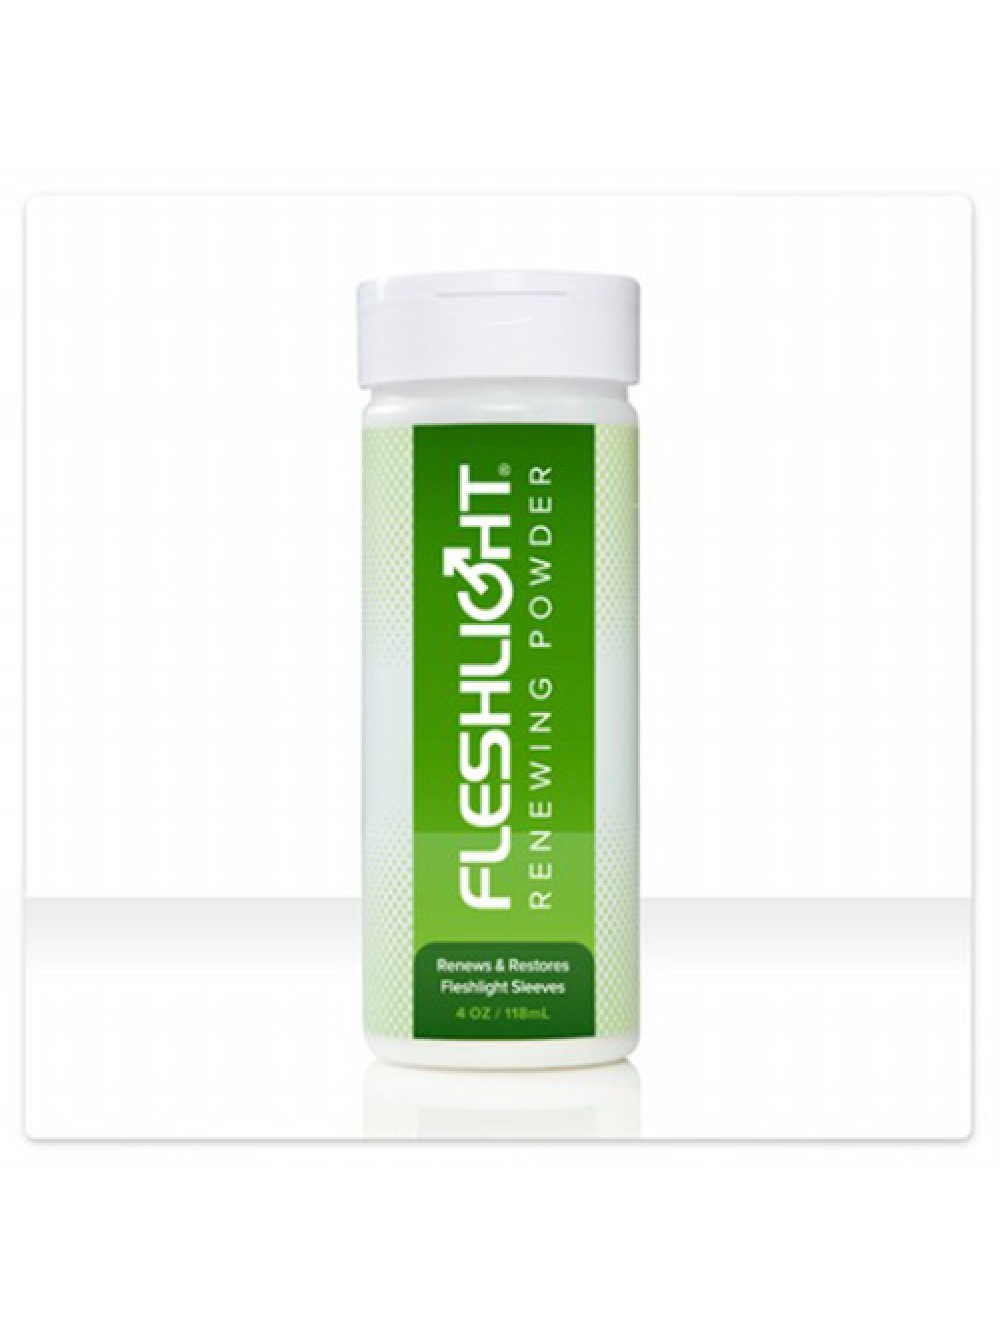 Fleshlight - Renewing Powder 810476016005